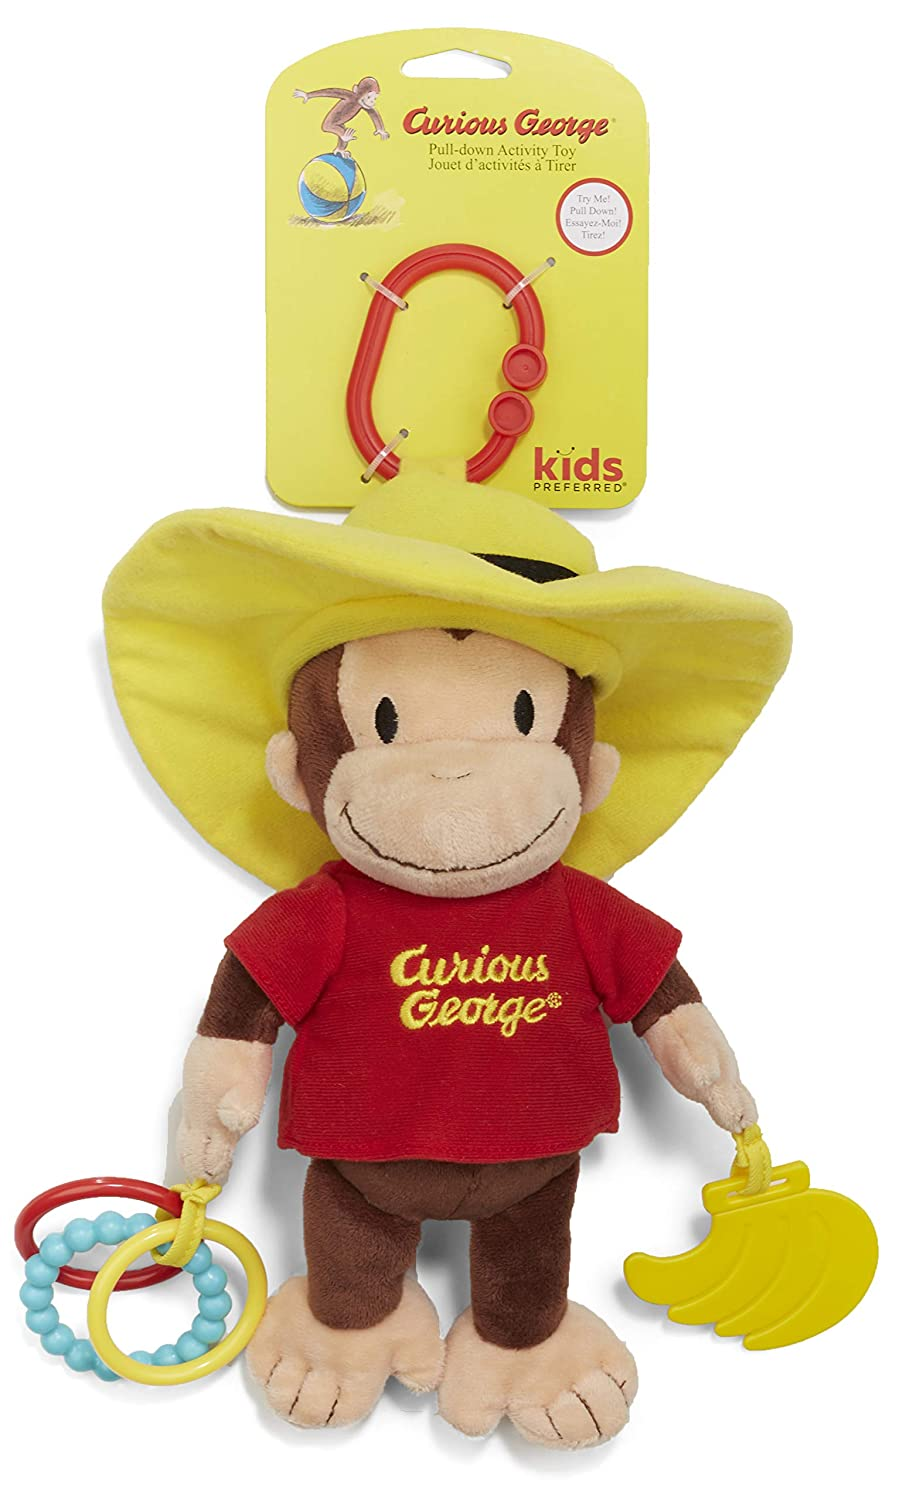 KIDS PREFERRED Curious George Pull-Down Plush Baby Activity Toy